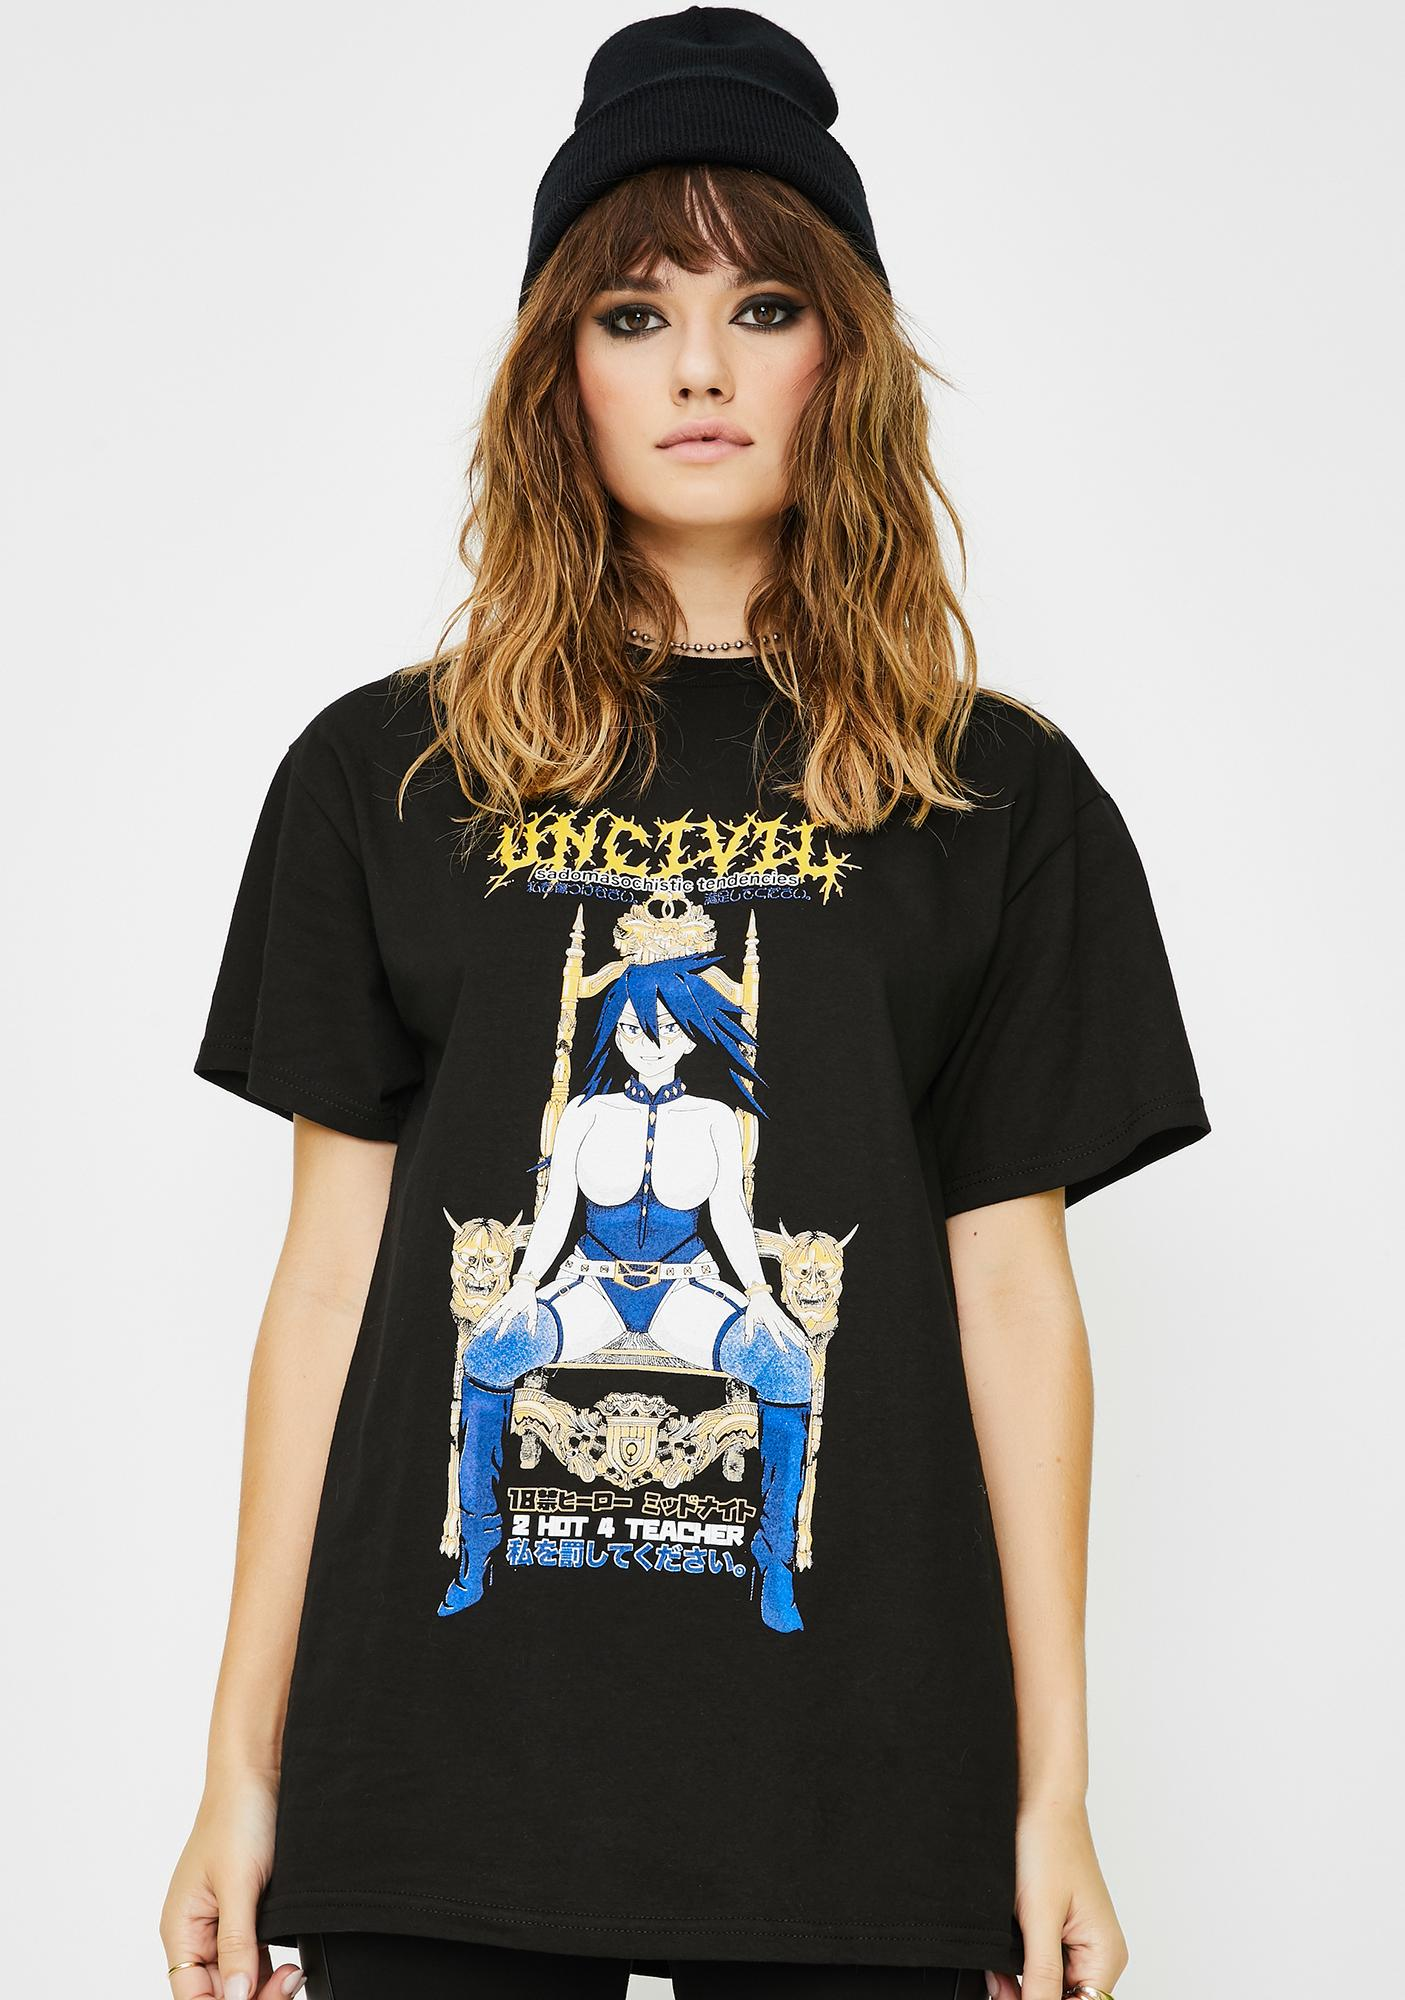 UNCIVIL XXX  Sadomasochistic Tendencies Graphic Tee